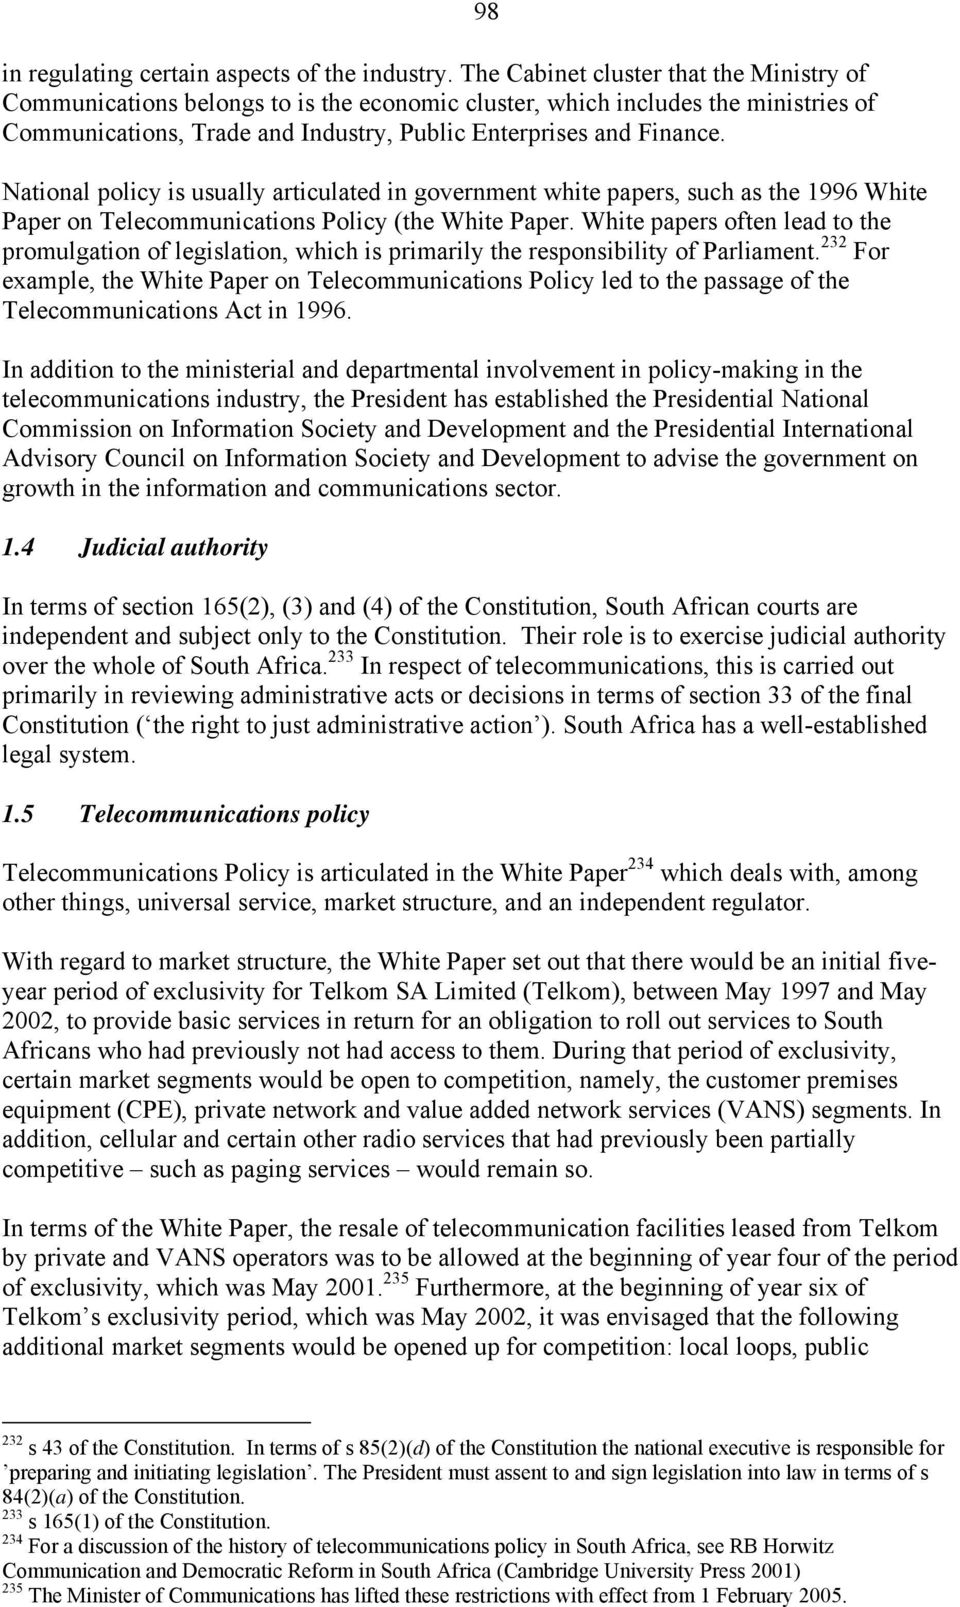 National policy is usually articulated in government white papers, such as the 1996 White Paper on Telecommunications Policy (the White Paper.